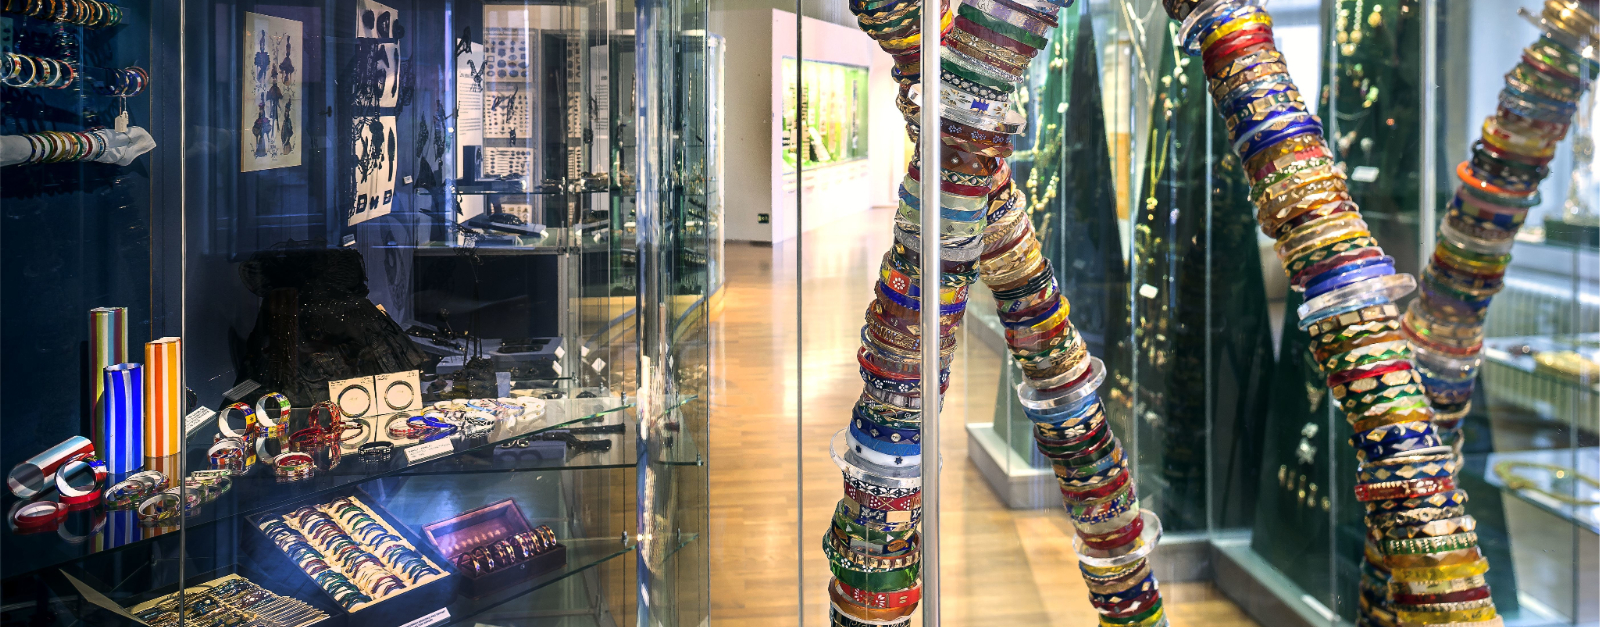 Museum of Glass and Jewellery Jablonec nad Nisou